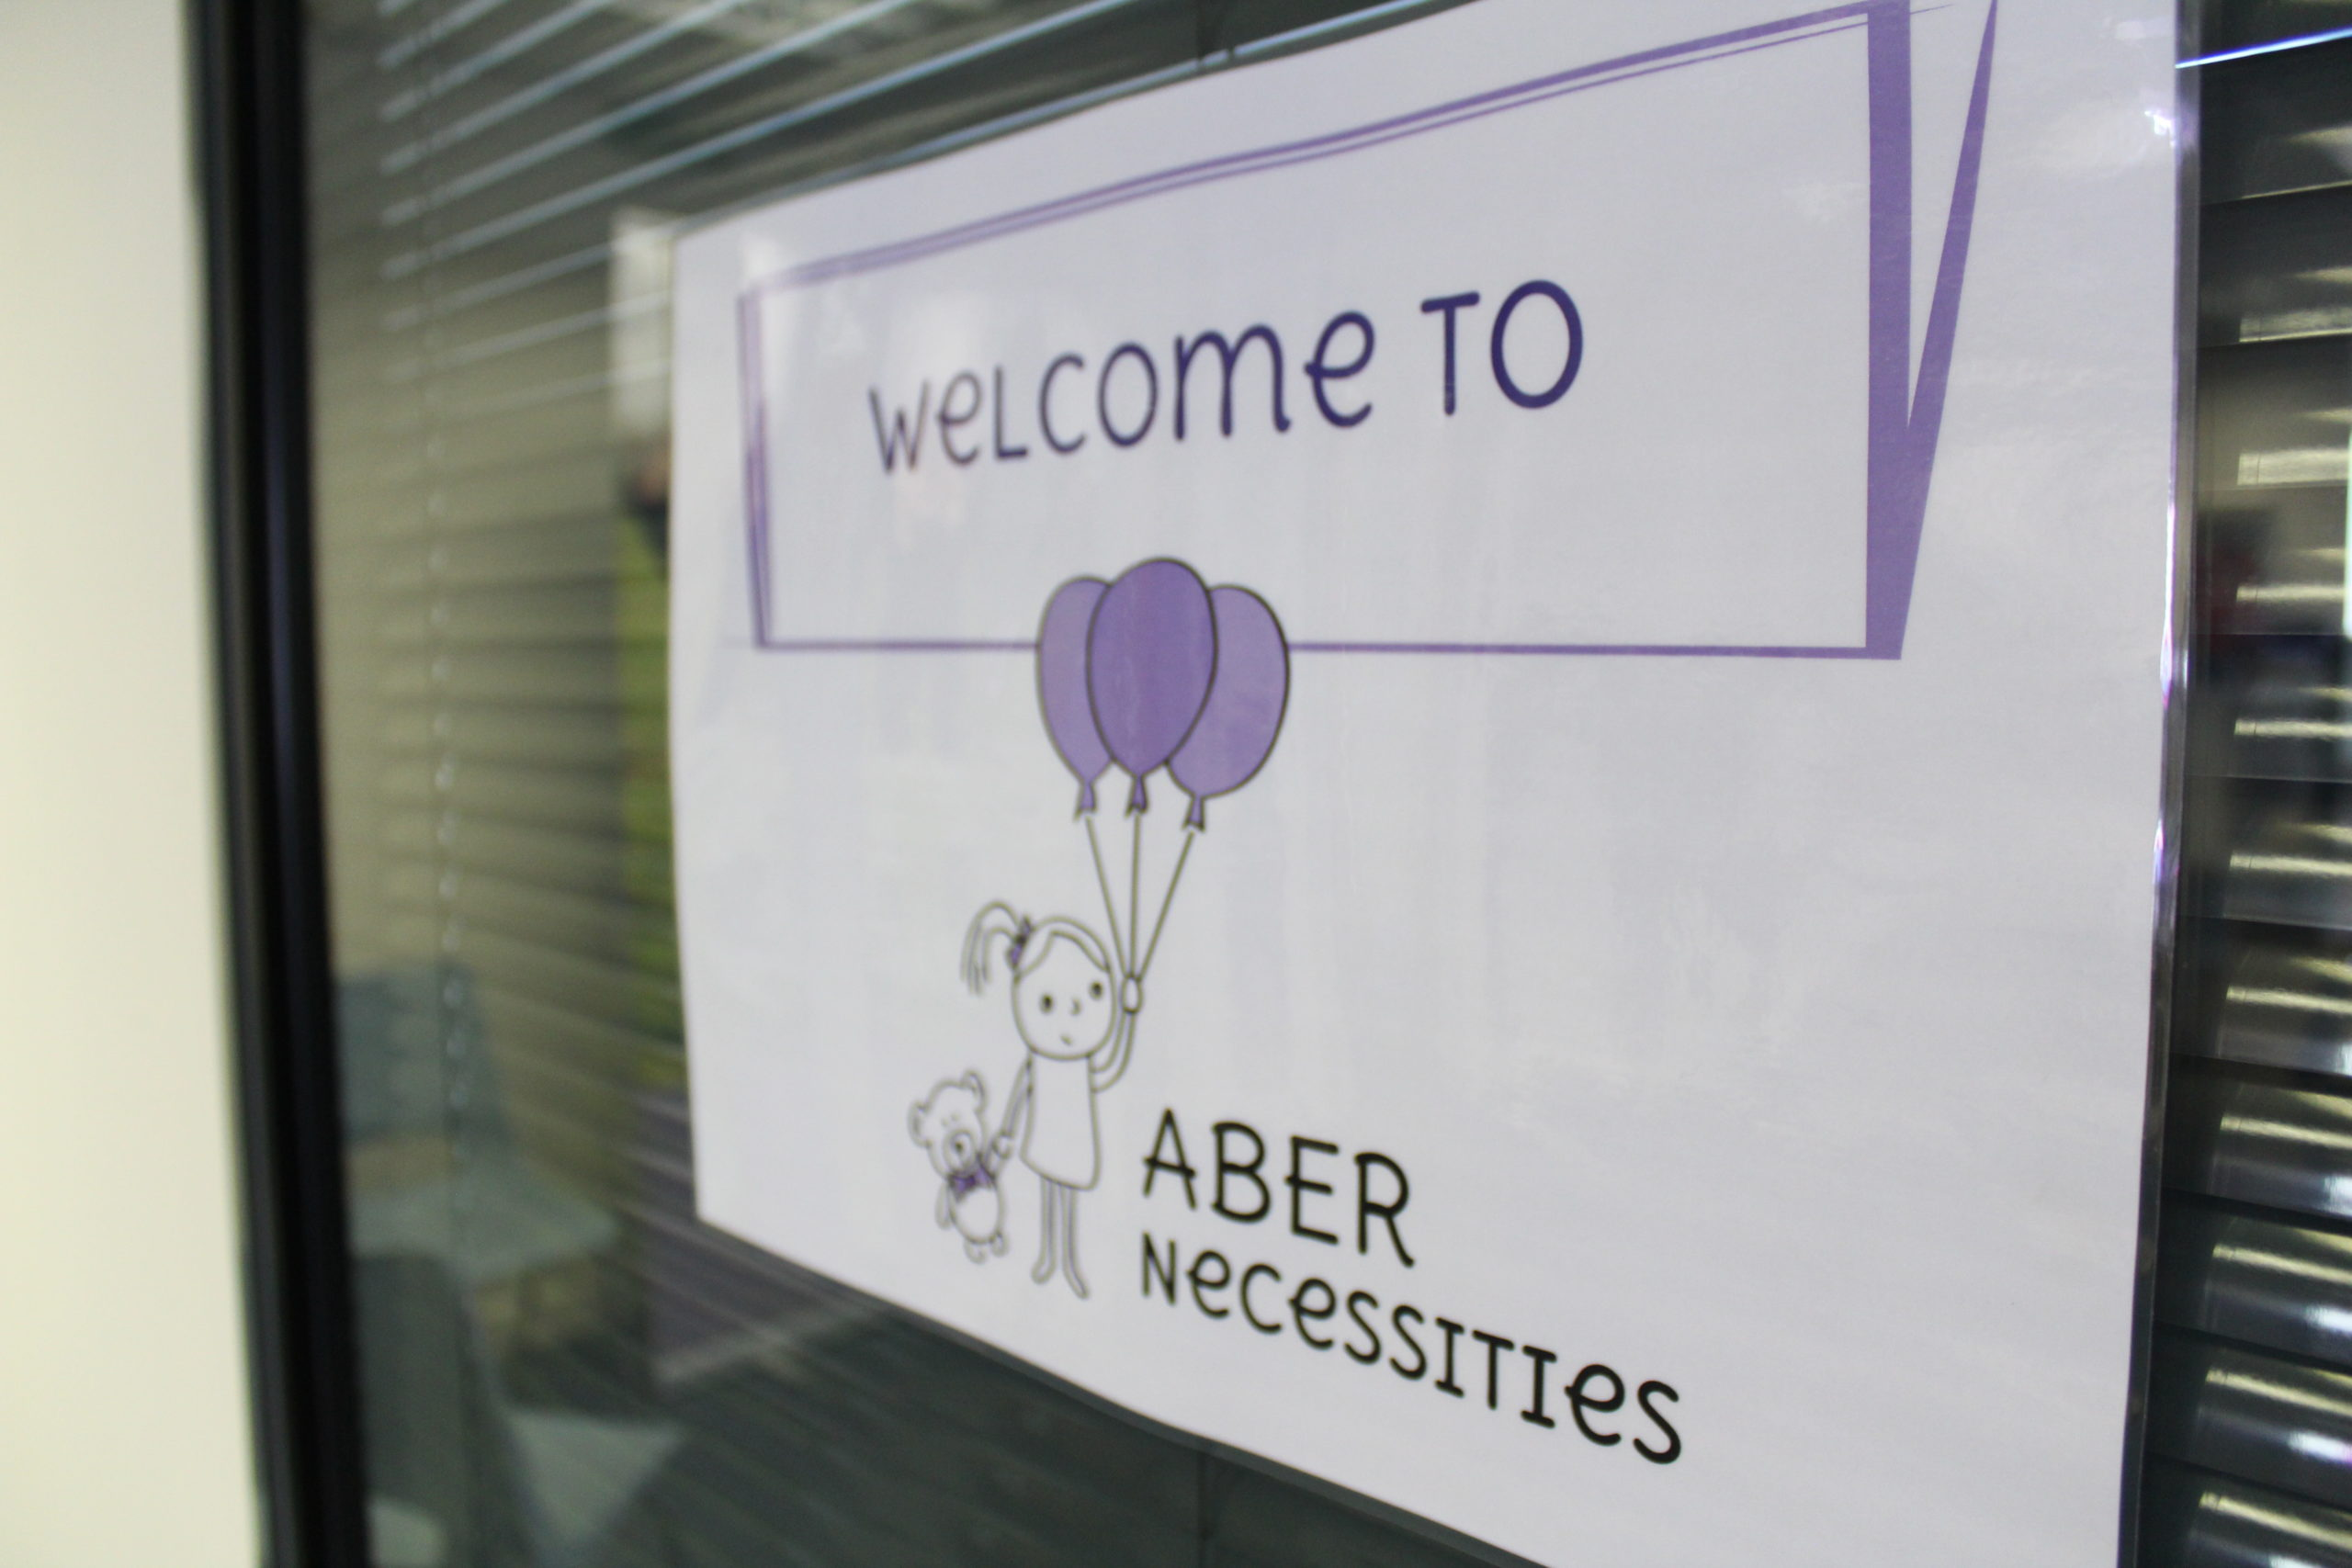 AberNecessities has benefited from a £1,000 donation from Barratt Homes North Scotland.